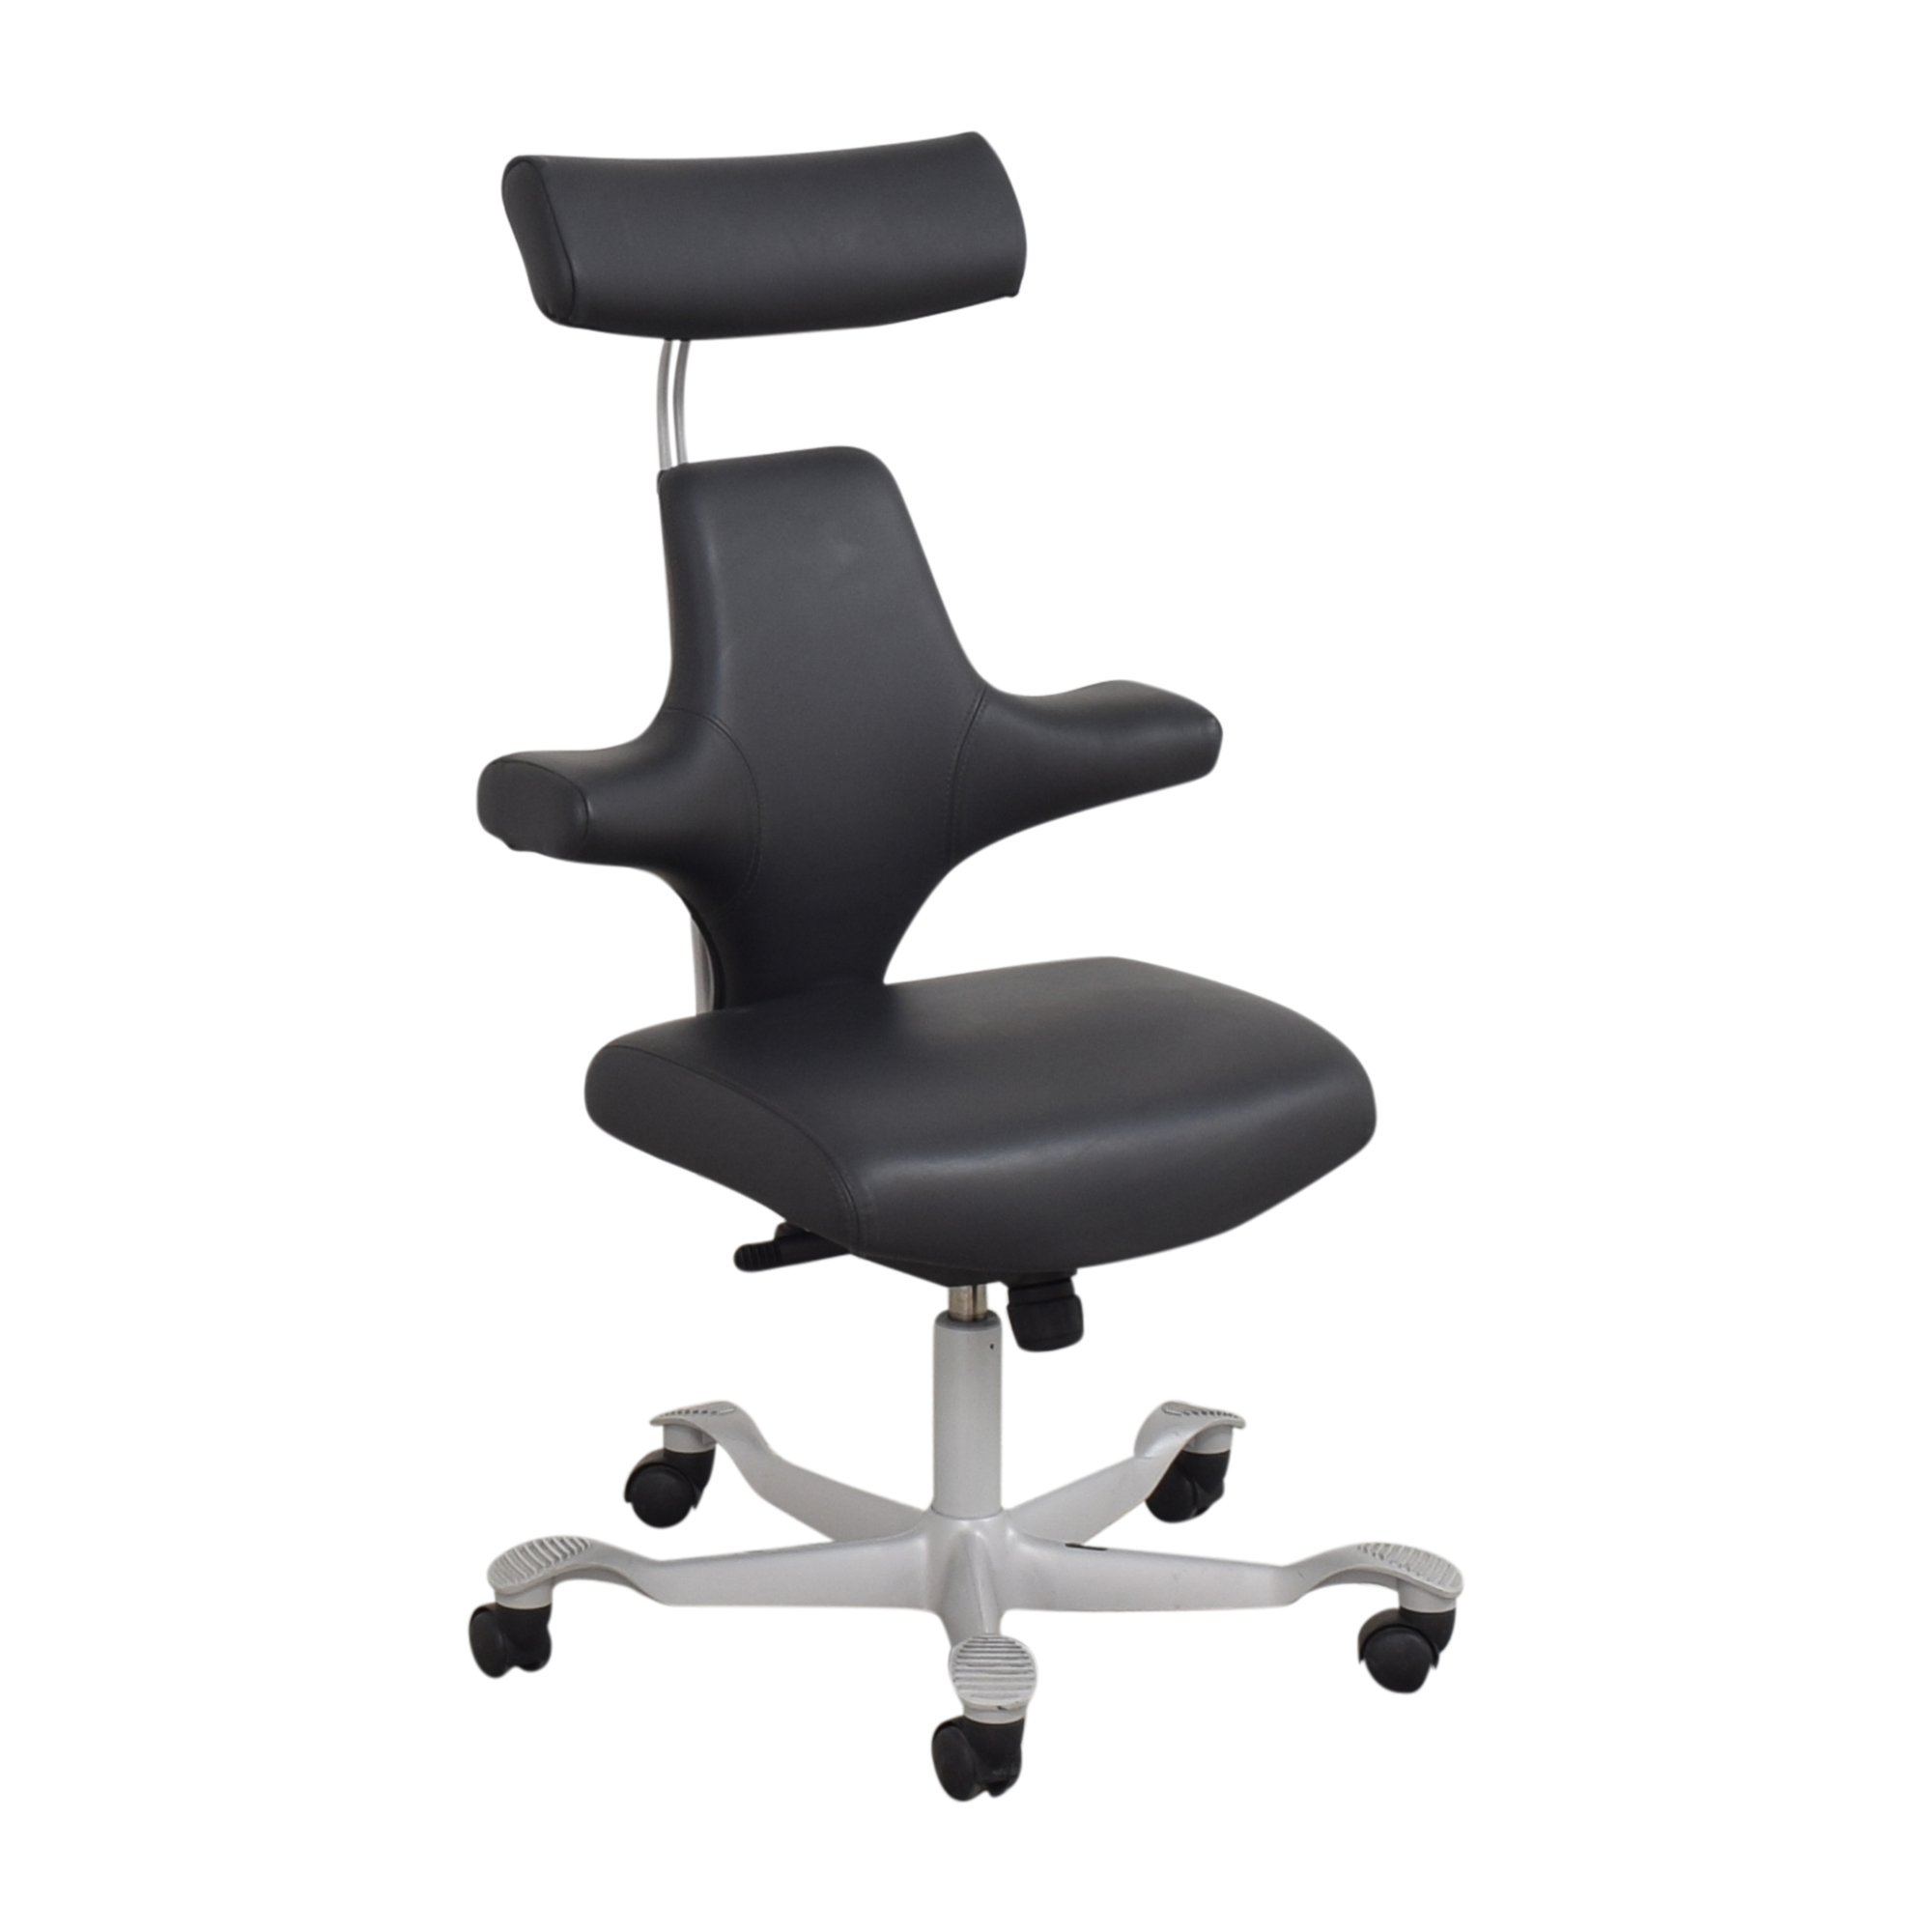 HAG HAG Capisco Adjustable Swivel Chair used